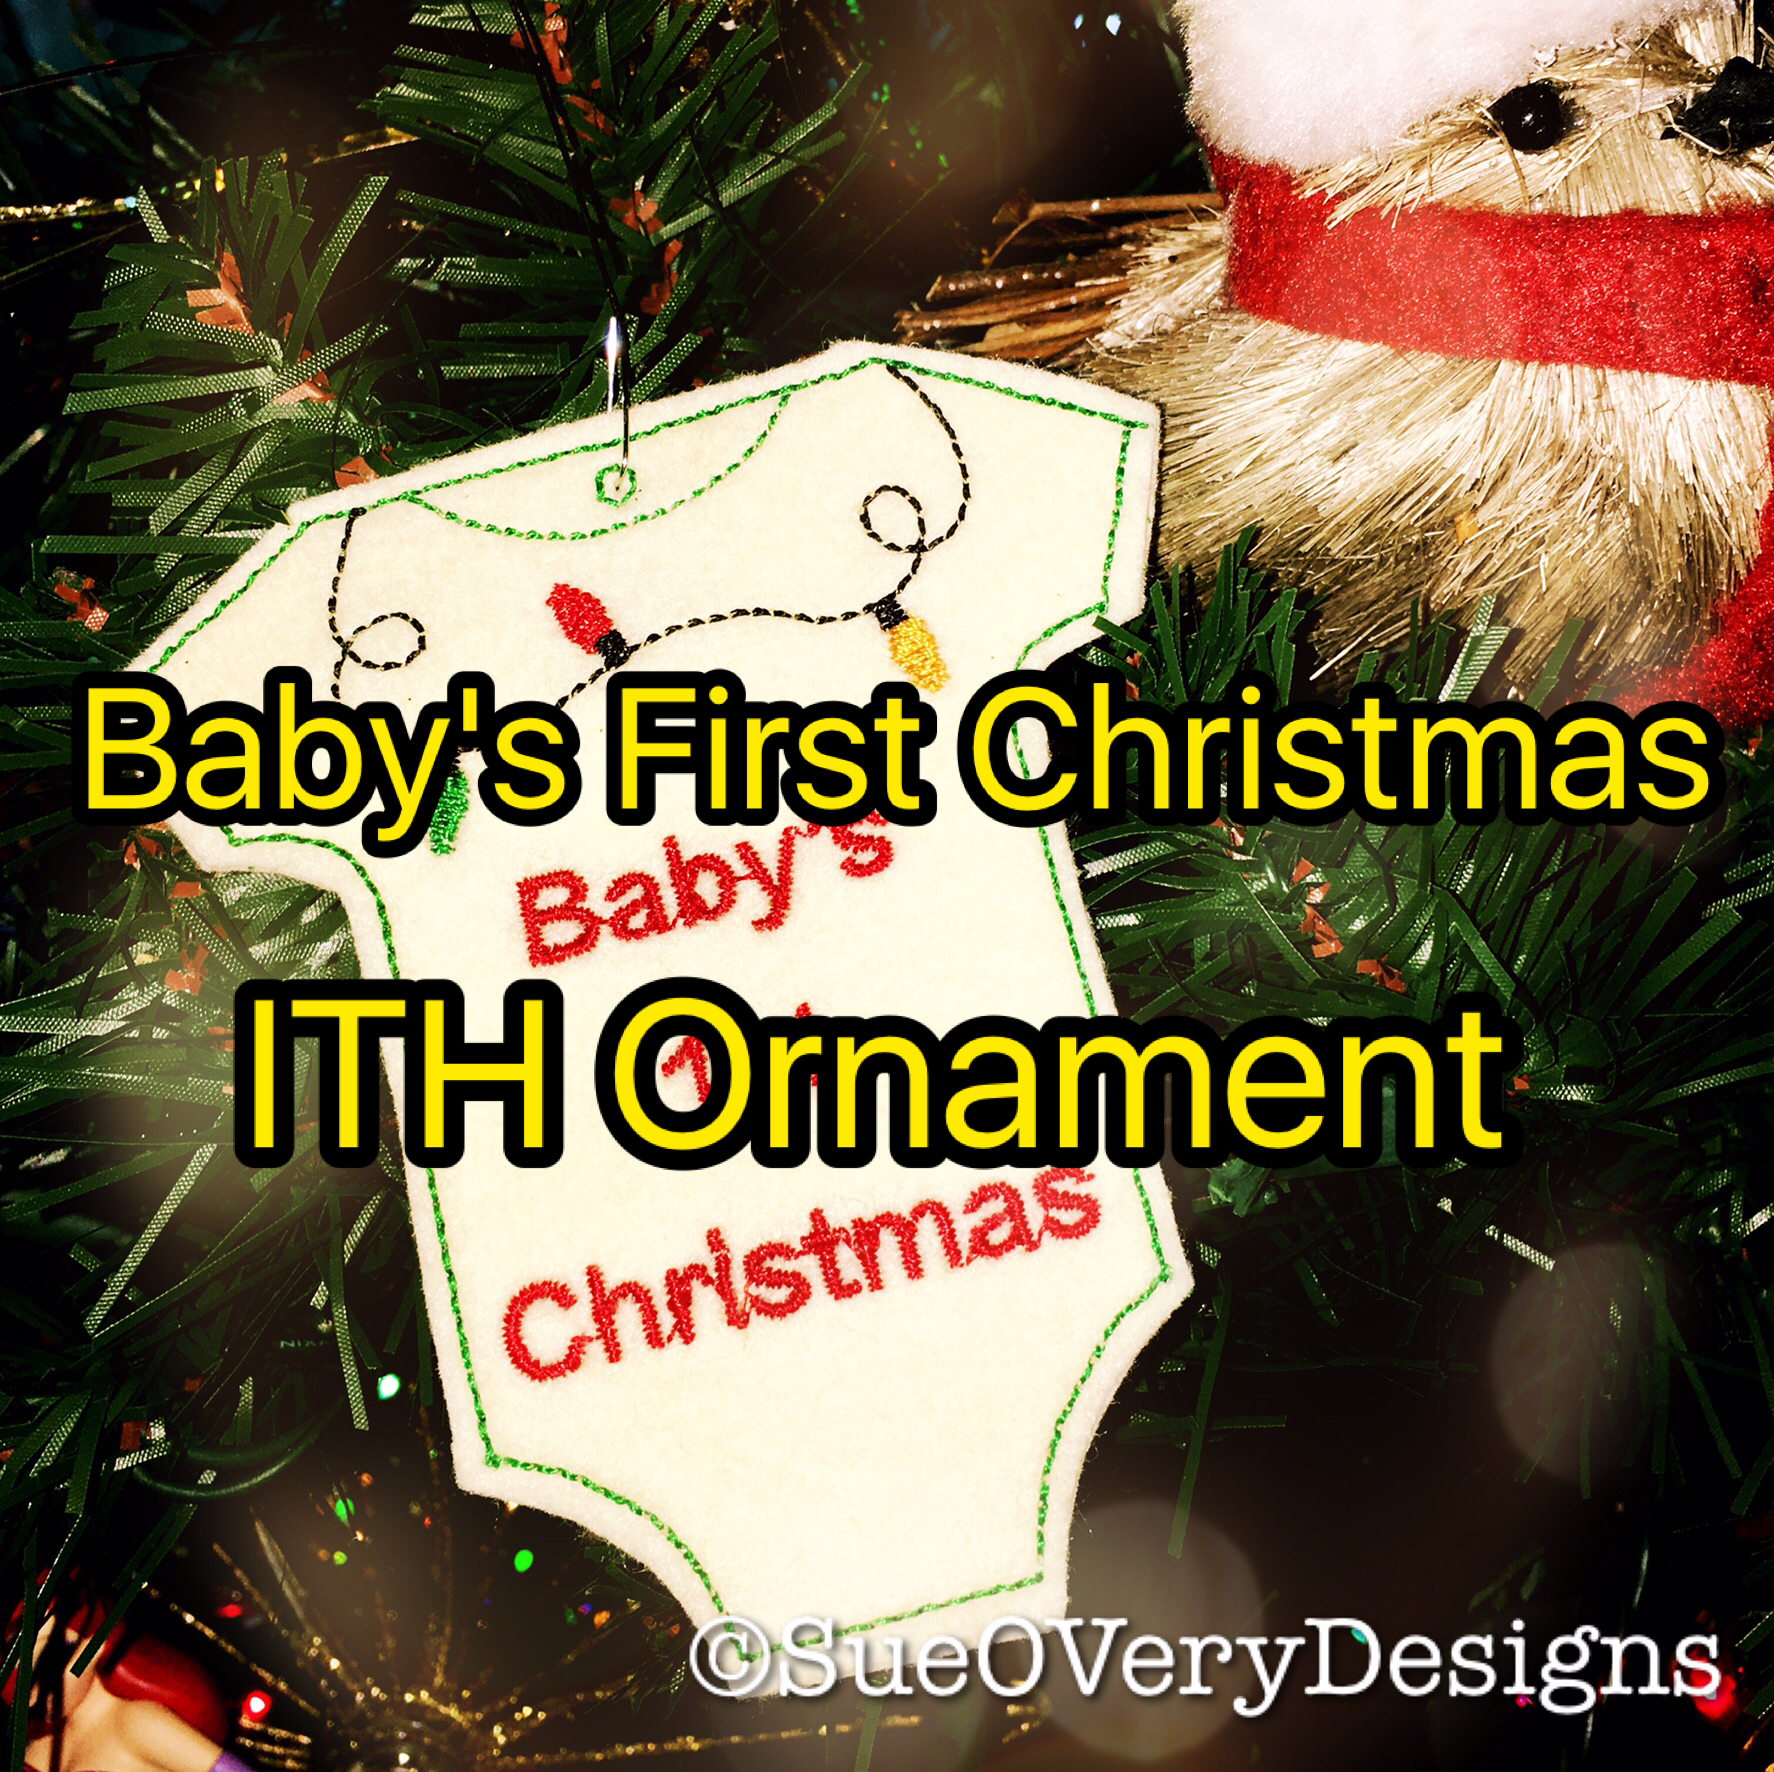 Baby's First Christmas ITH Ornament